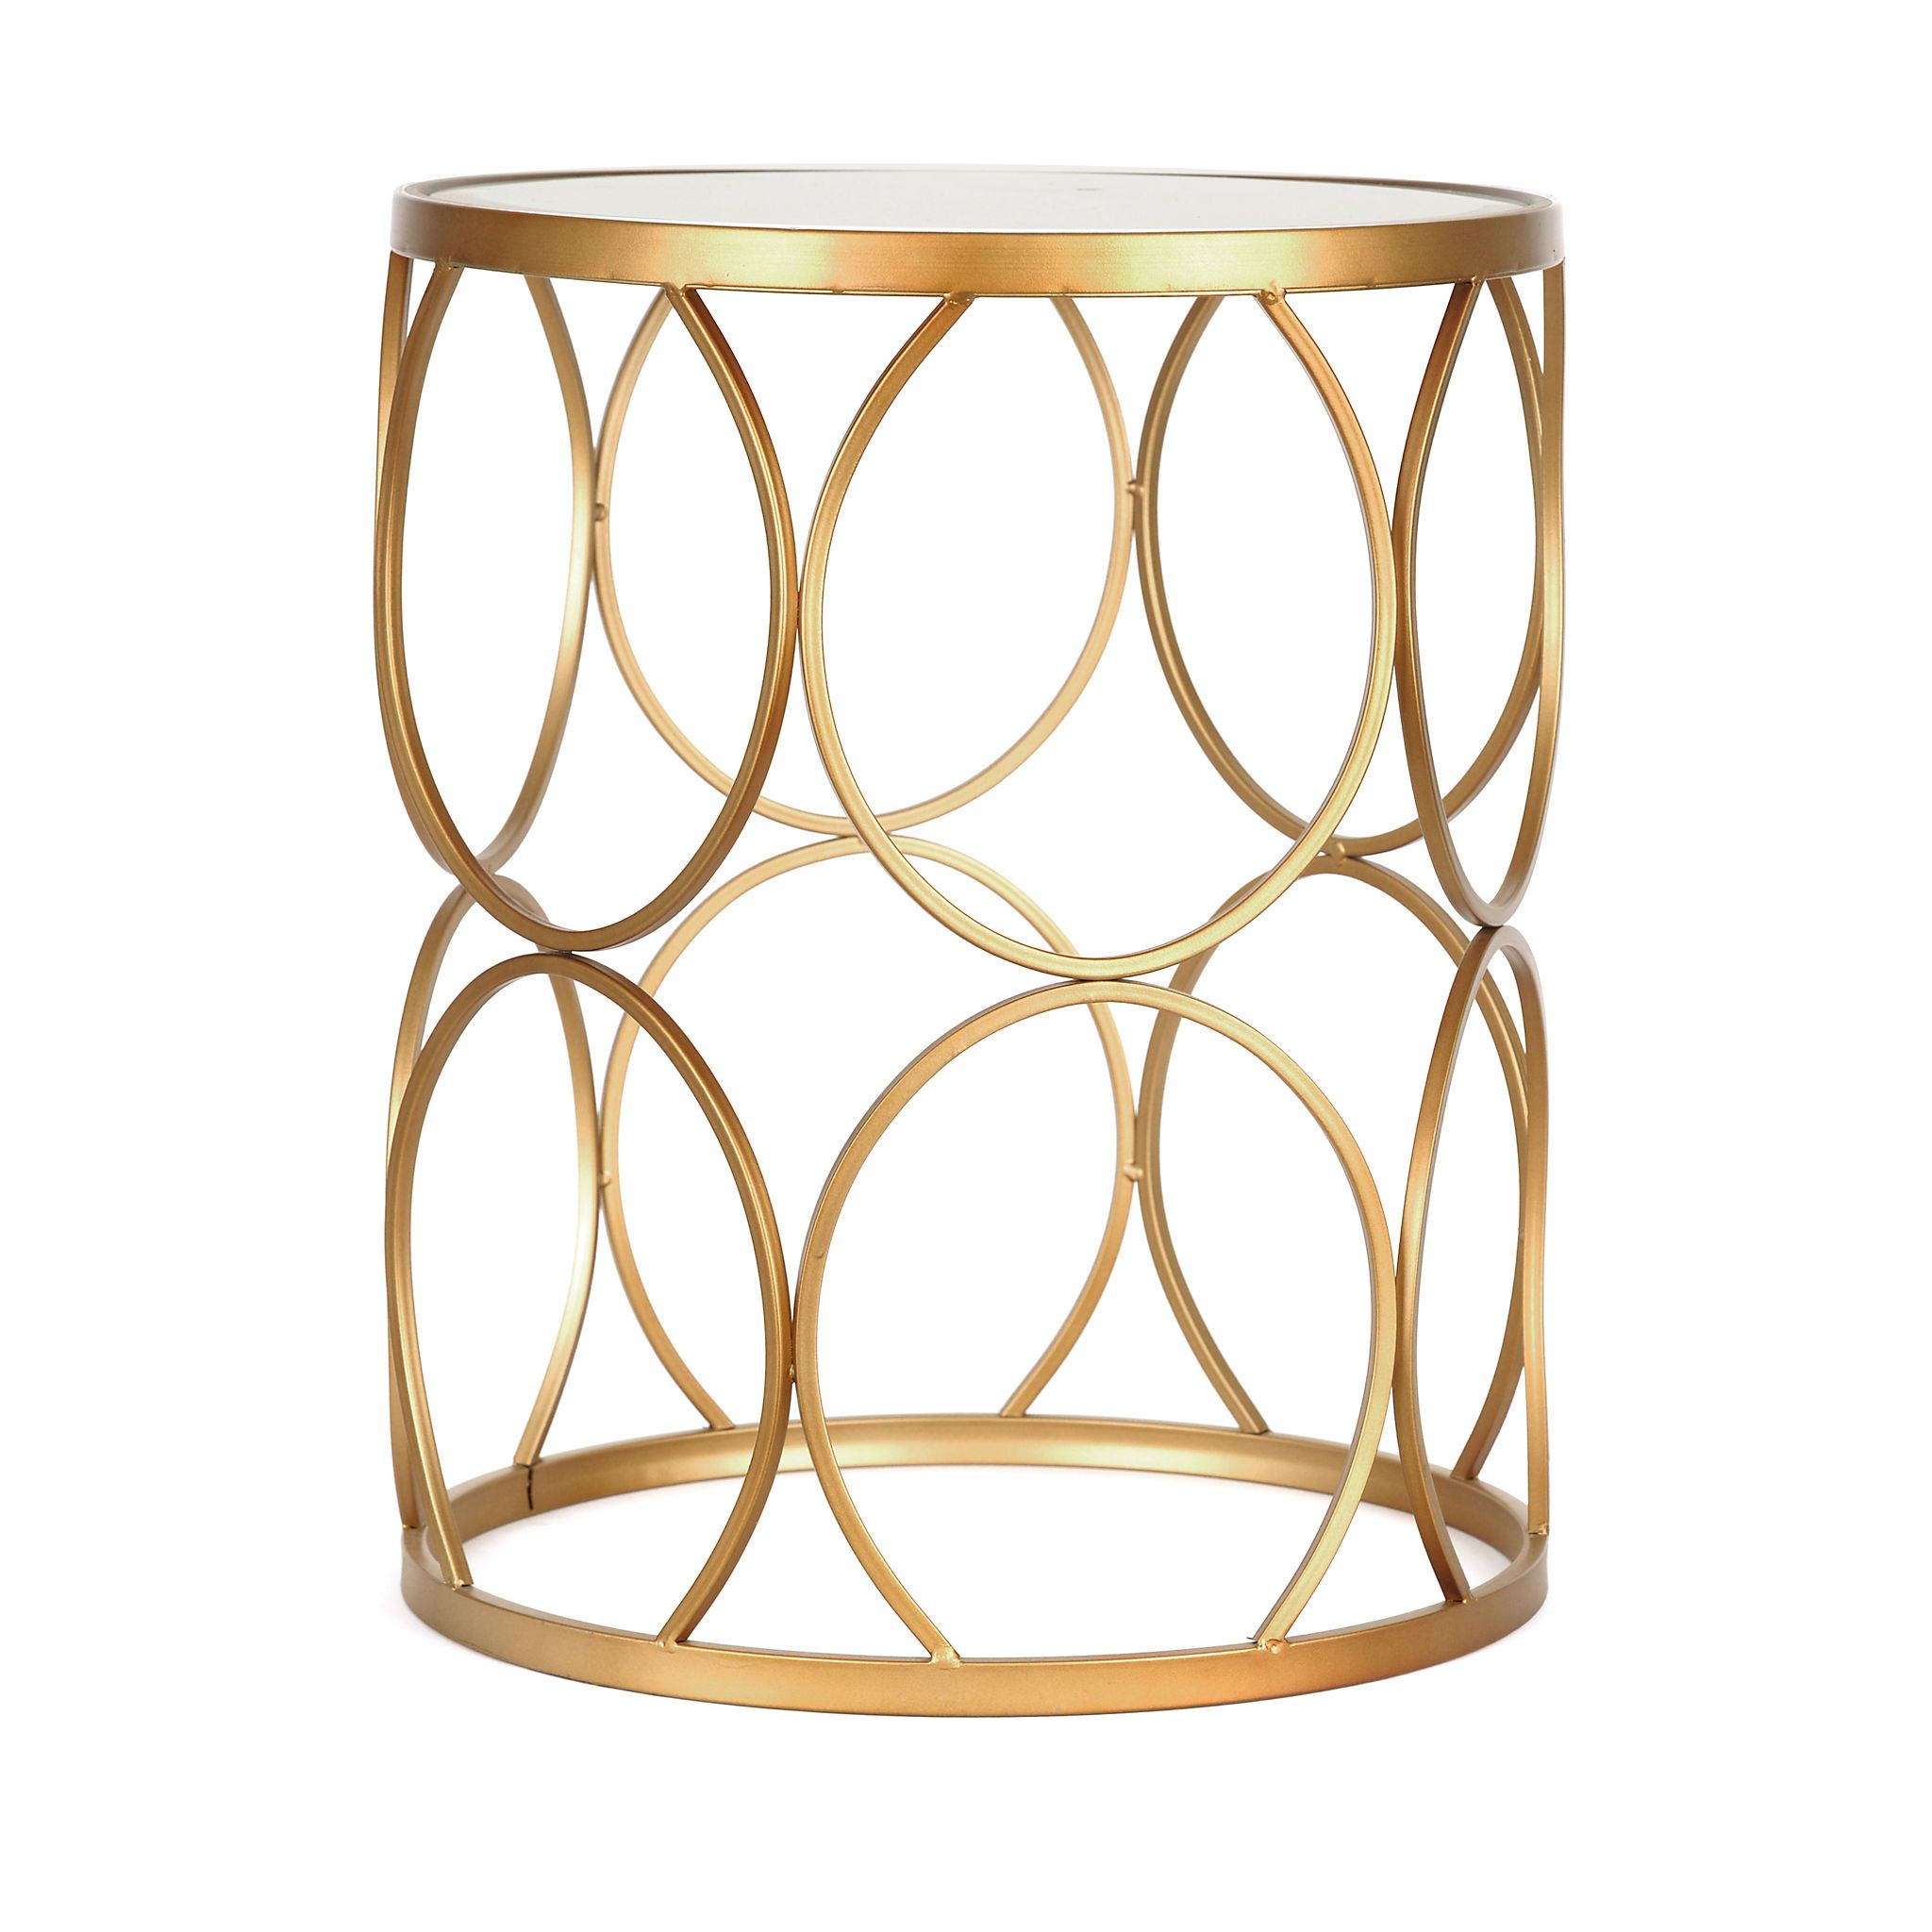 Gold Circles Mirrored Side Table Gold Circle Mirror Gold End Table Mirror Side Table